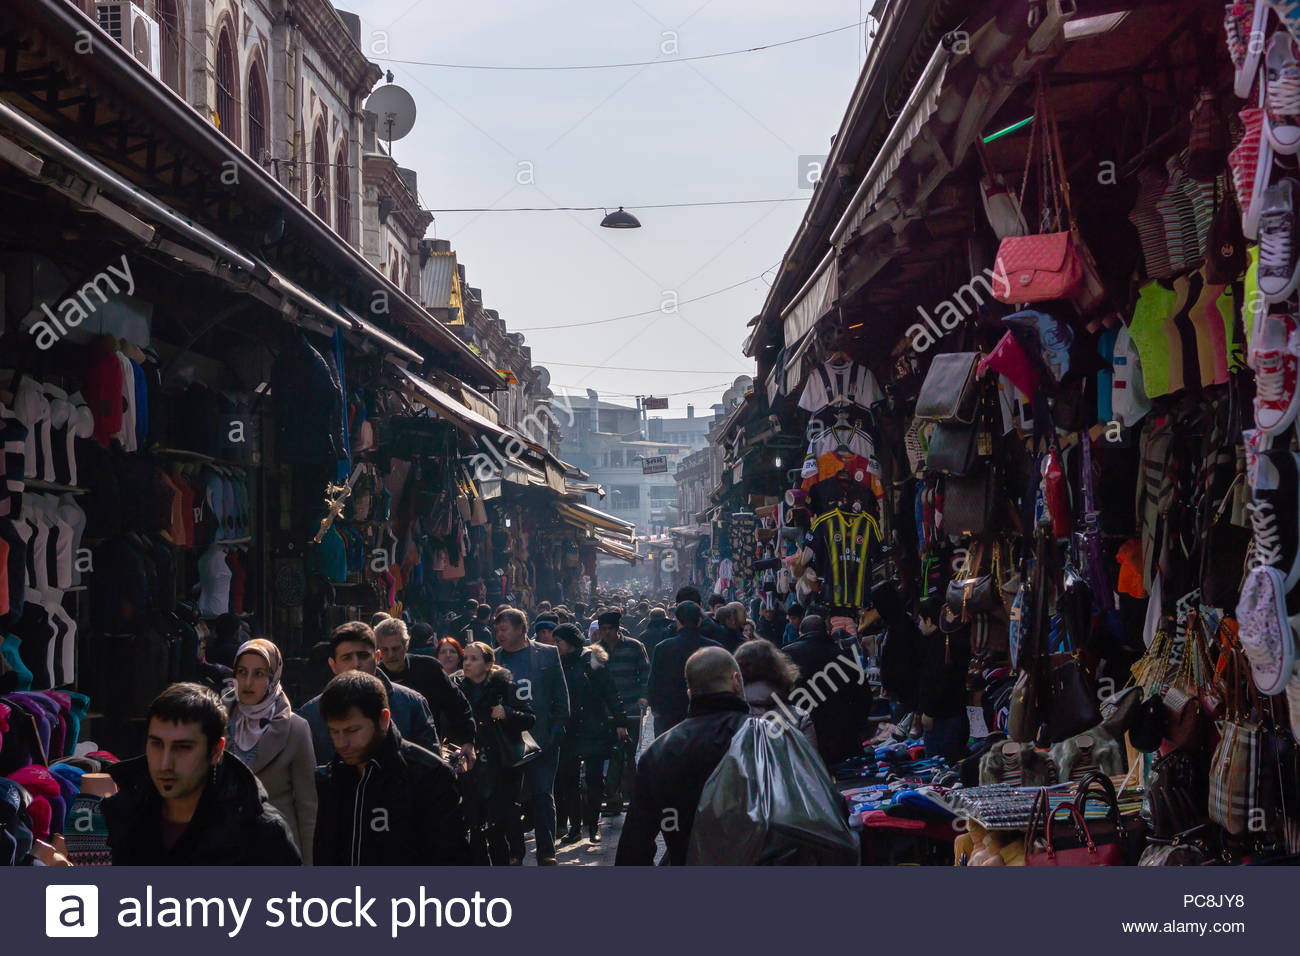 A busy street market in Istanbul where locals and tourists are going about their daily life and shopping on a cold winter morning. - Stock Image